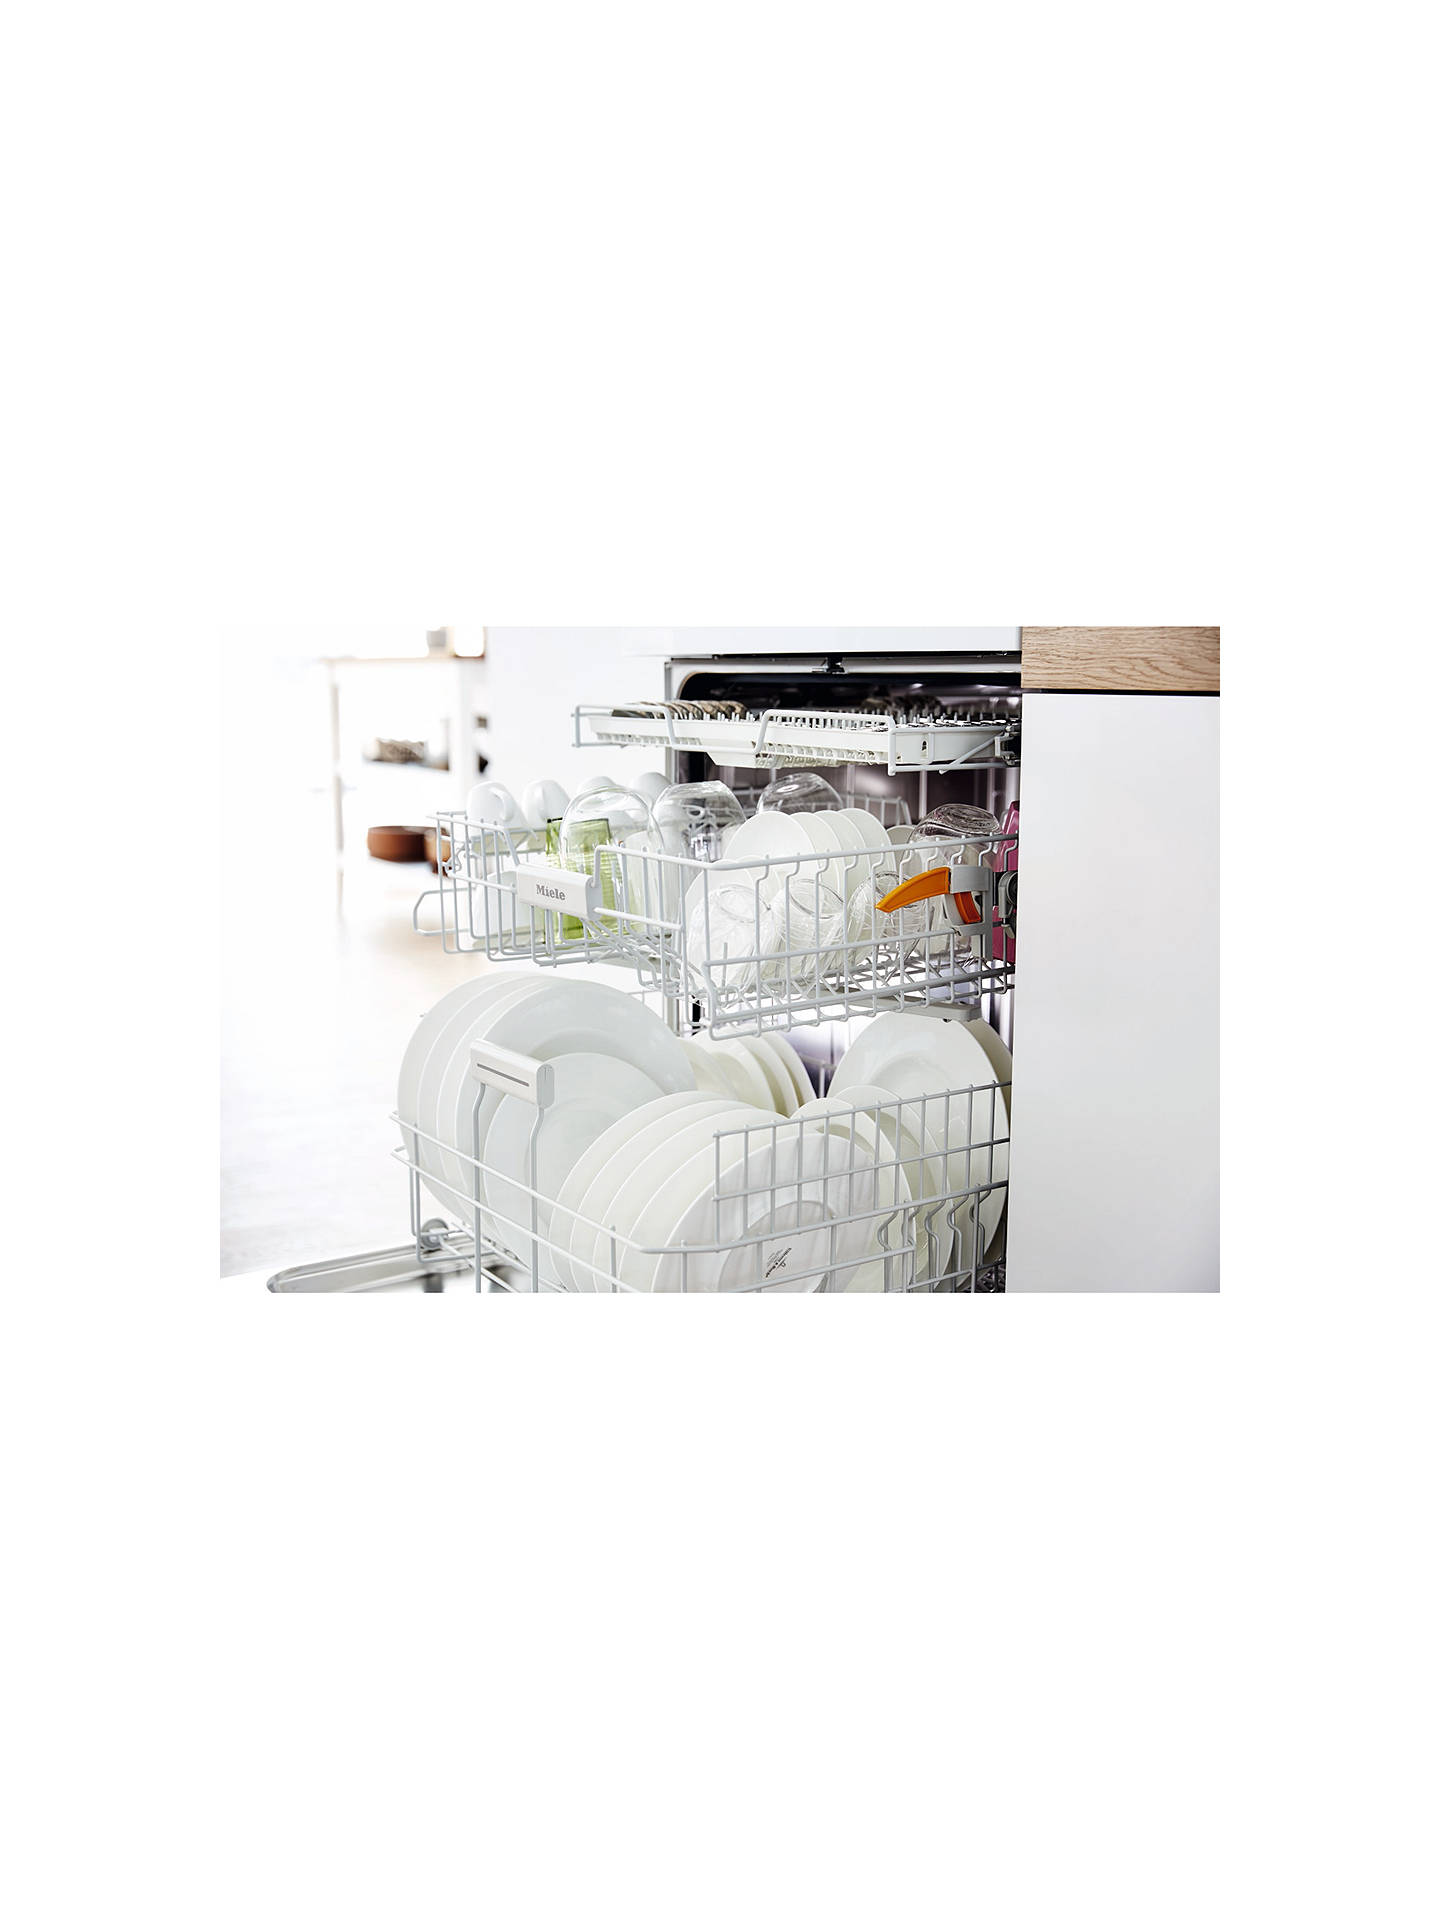 Miele G4203SC Freestanding Dishwasher, White